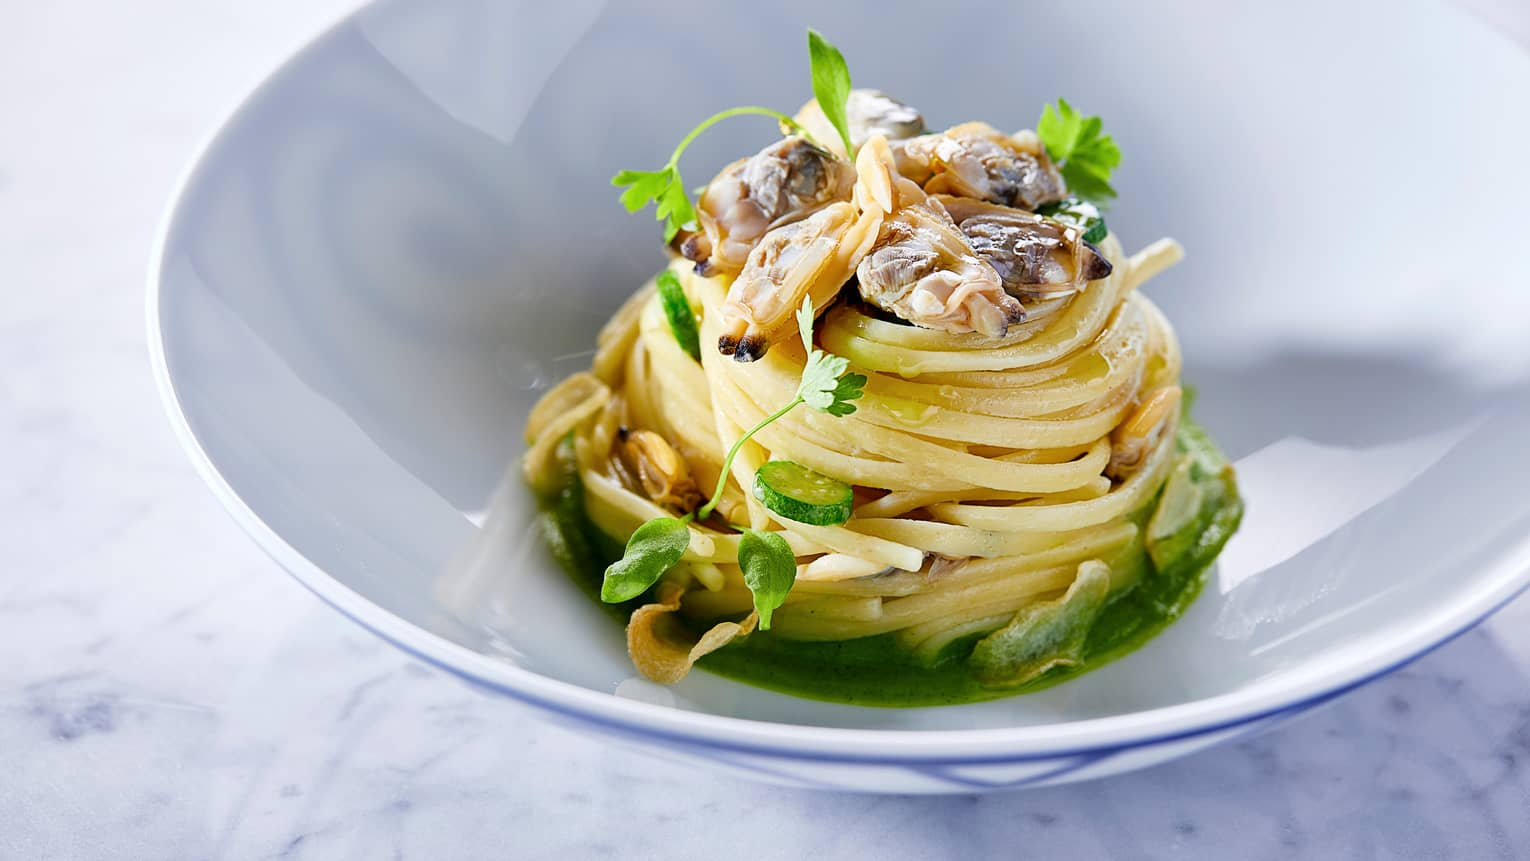 Linguine alle Vongole with pasta noodles piled high, fresh clams